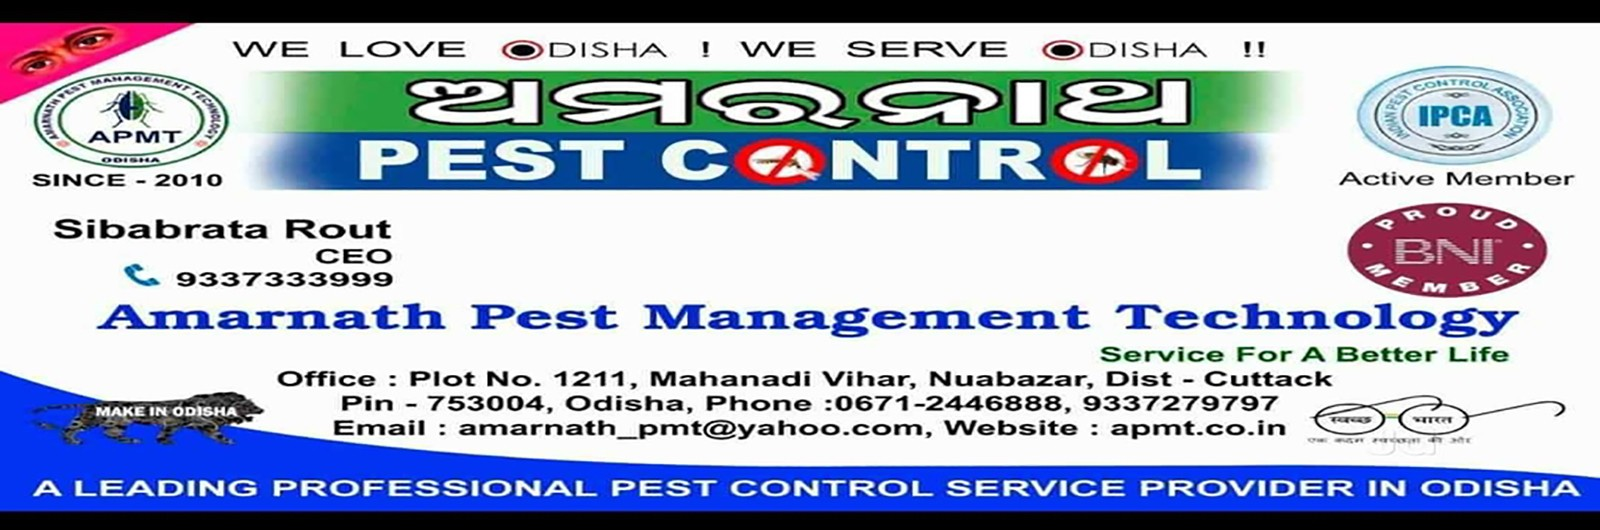 Amarnath Pest Management Technology